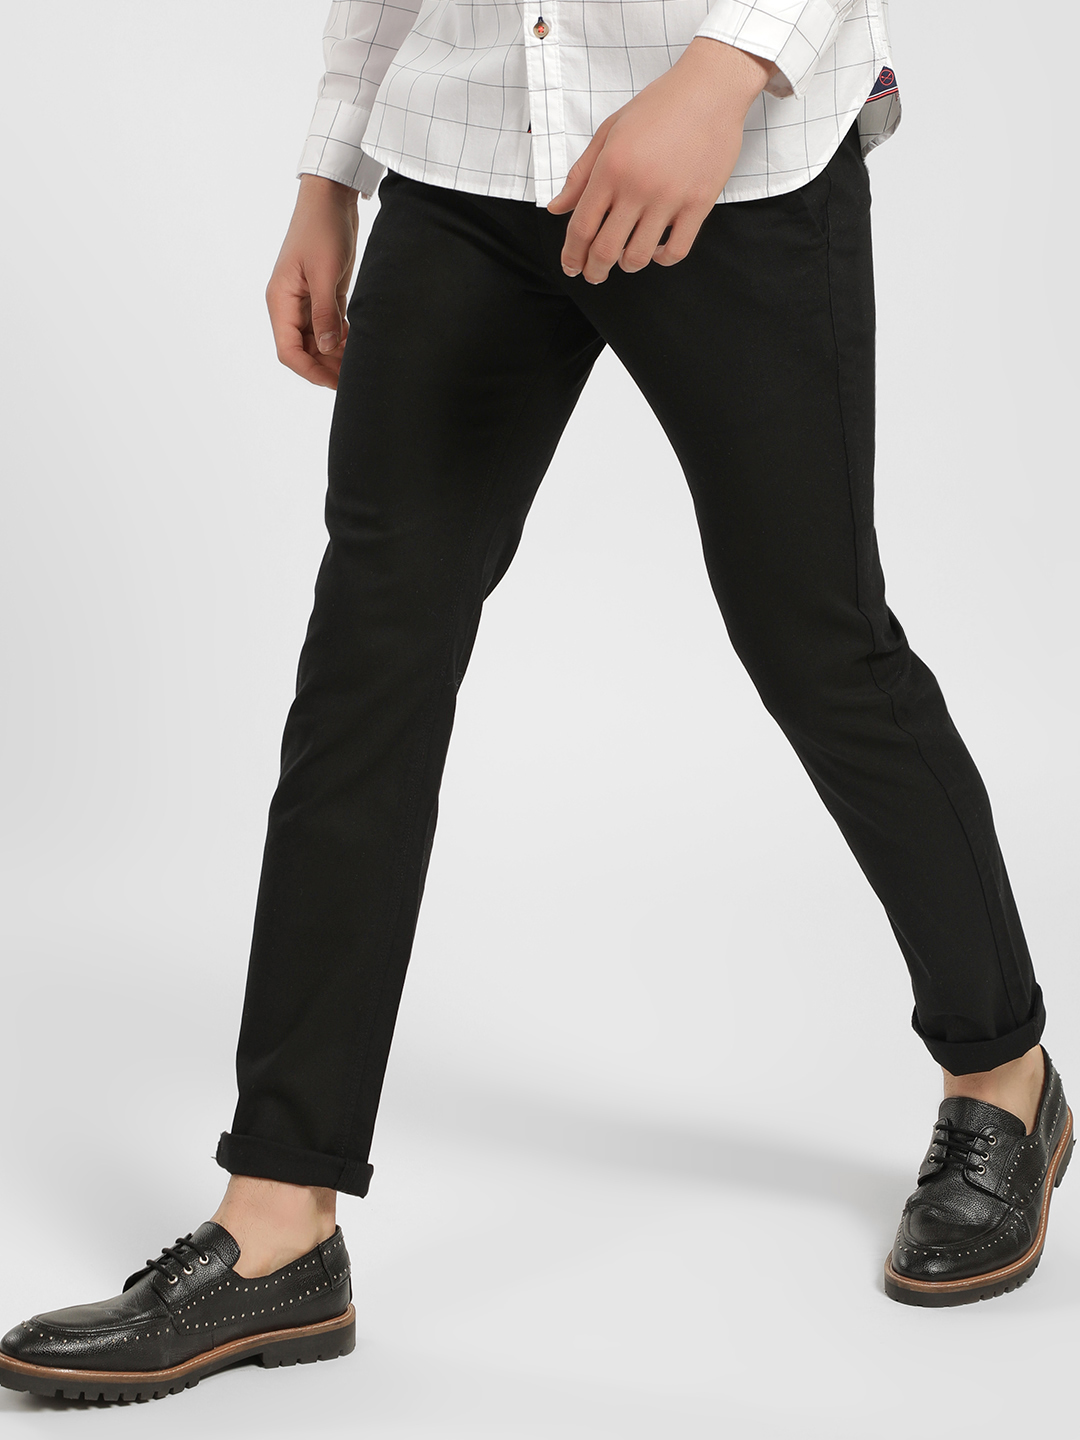 SCULLERS Black Basic Slim Fit Trousers 1